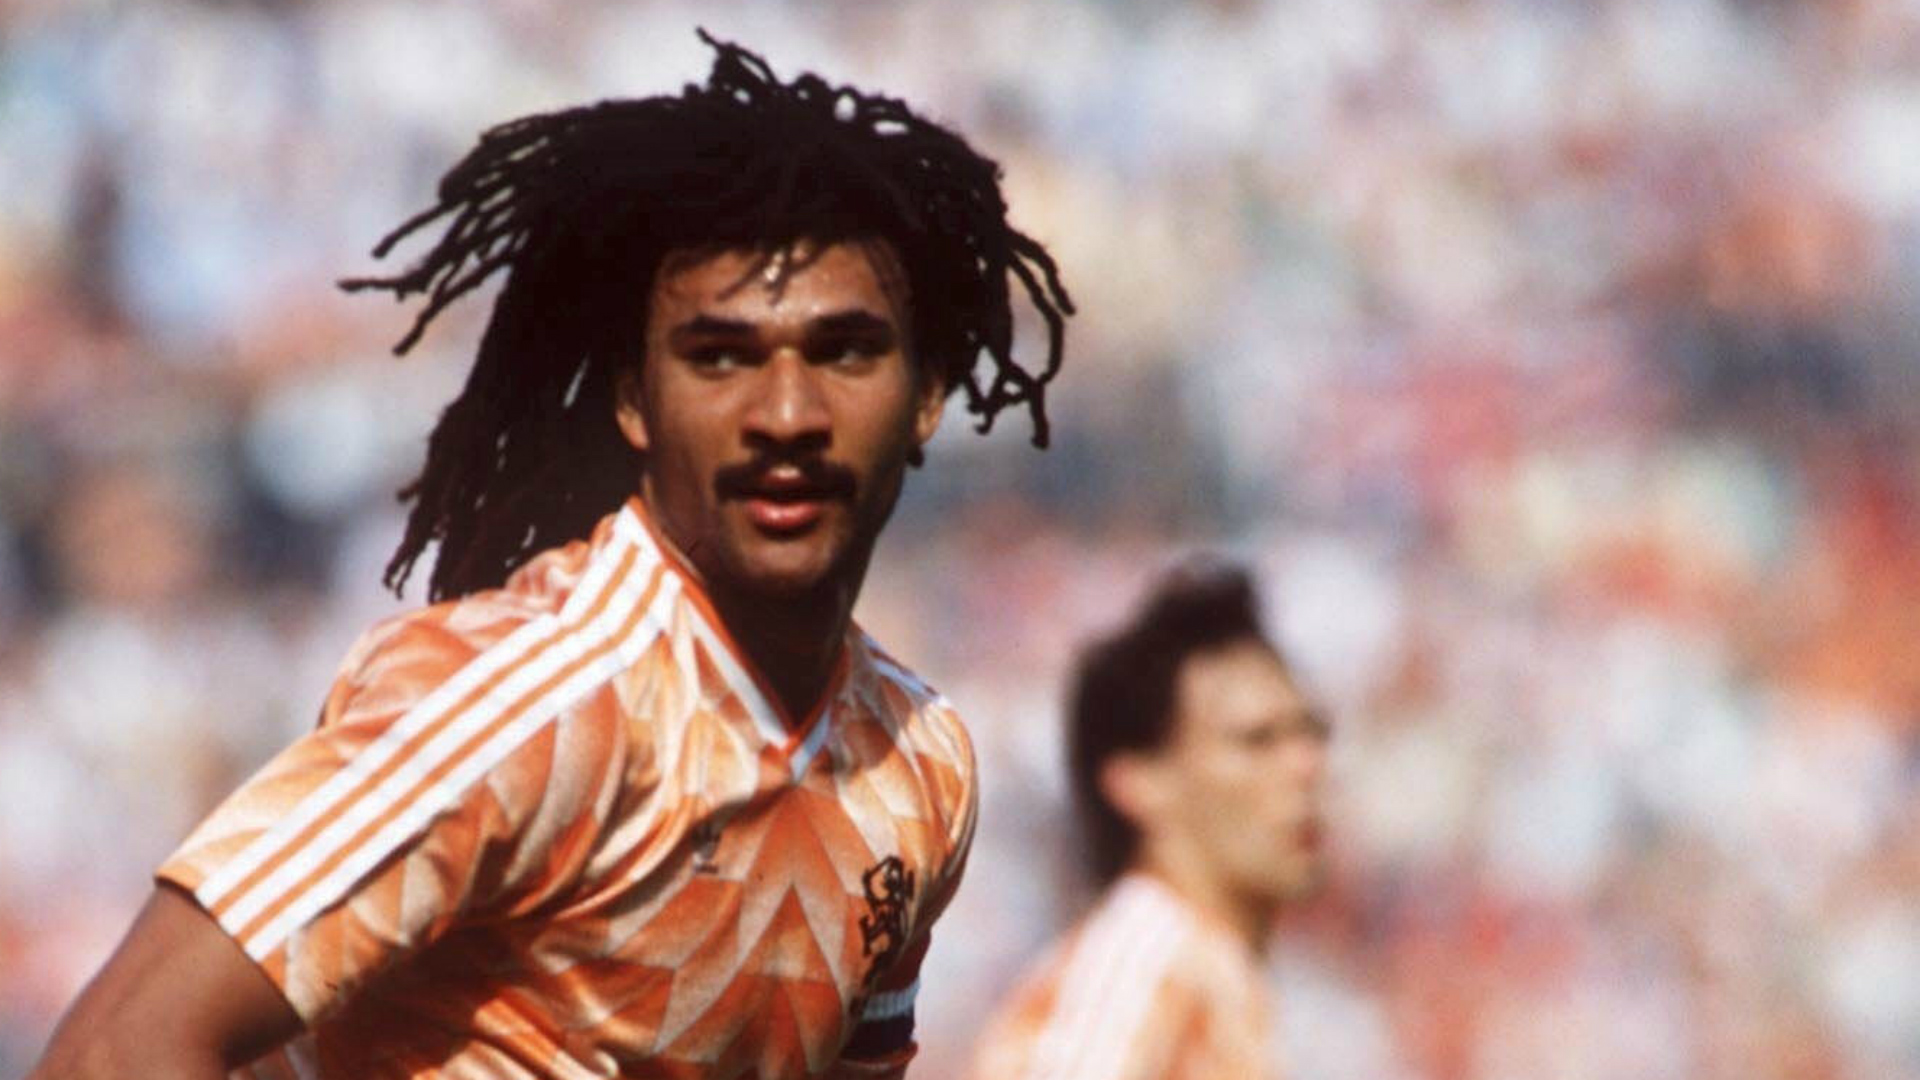 Ruud Gullit RUUD GULLIT WALLPAPERS FREE Wallpapers amp Background images